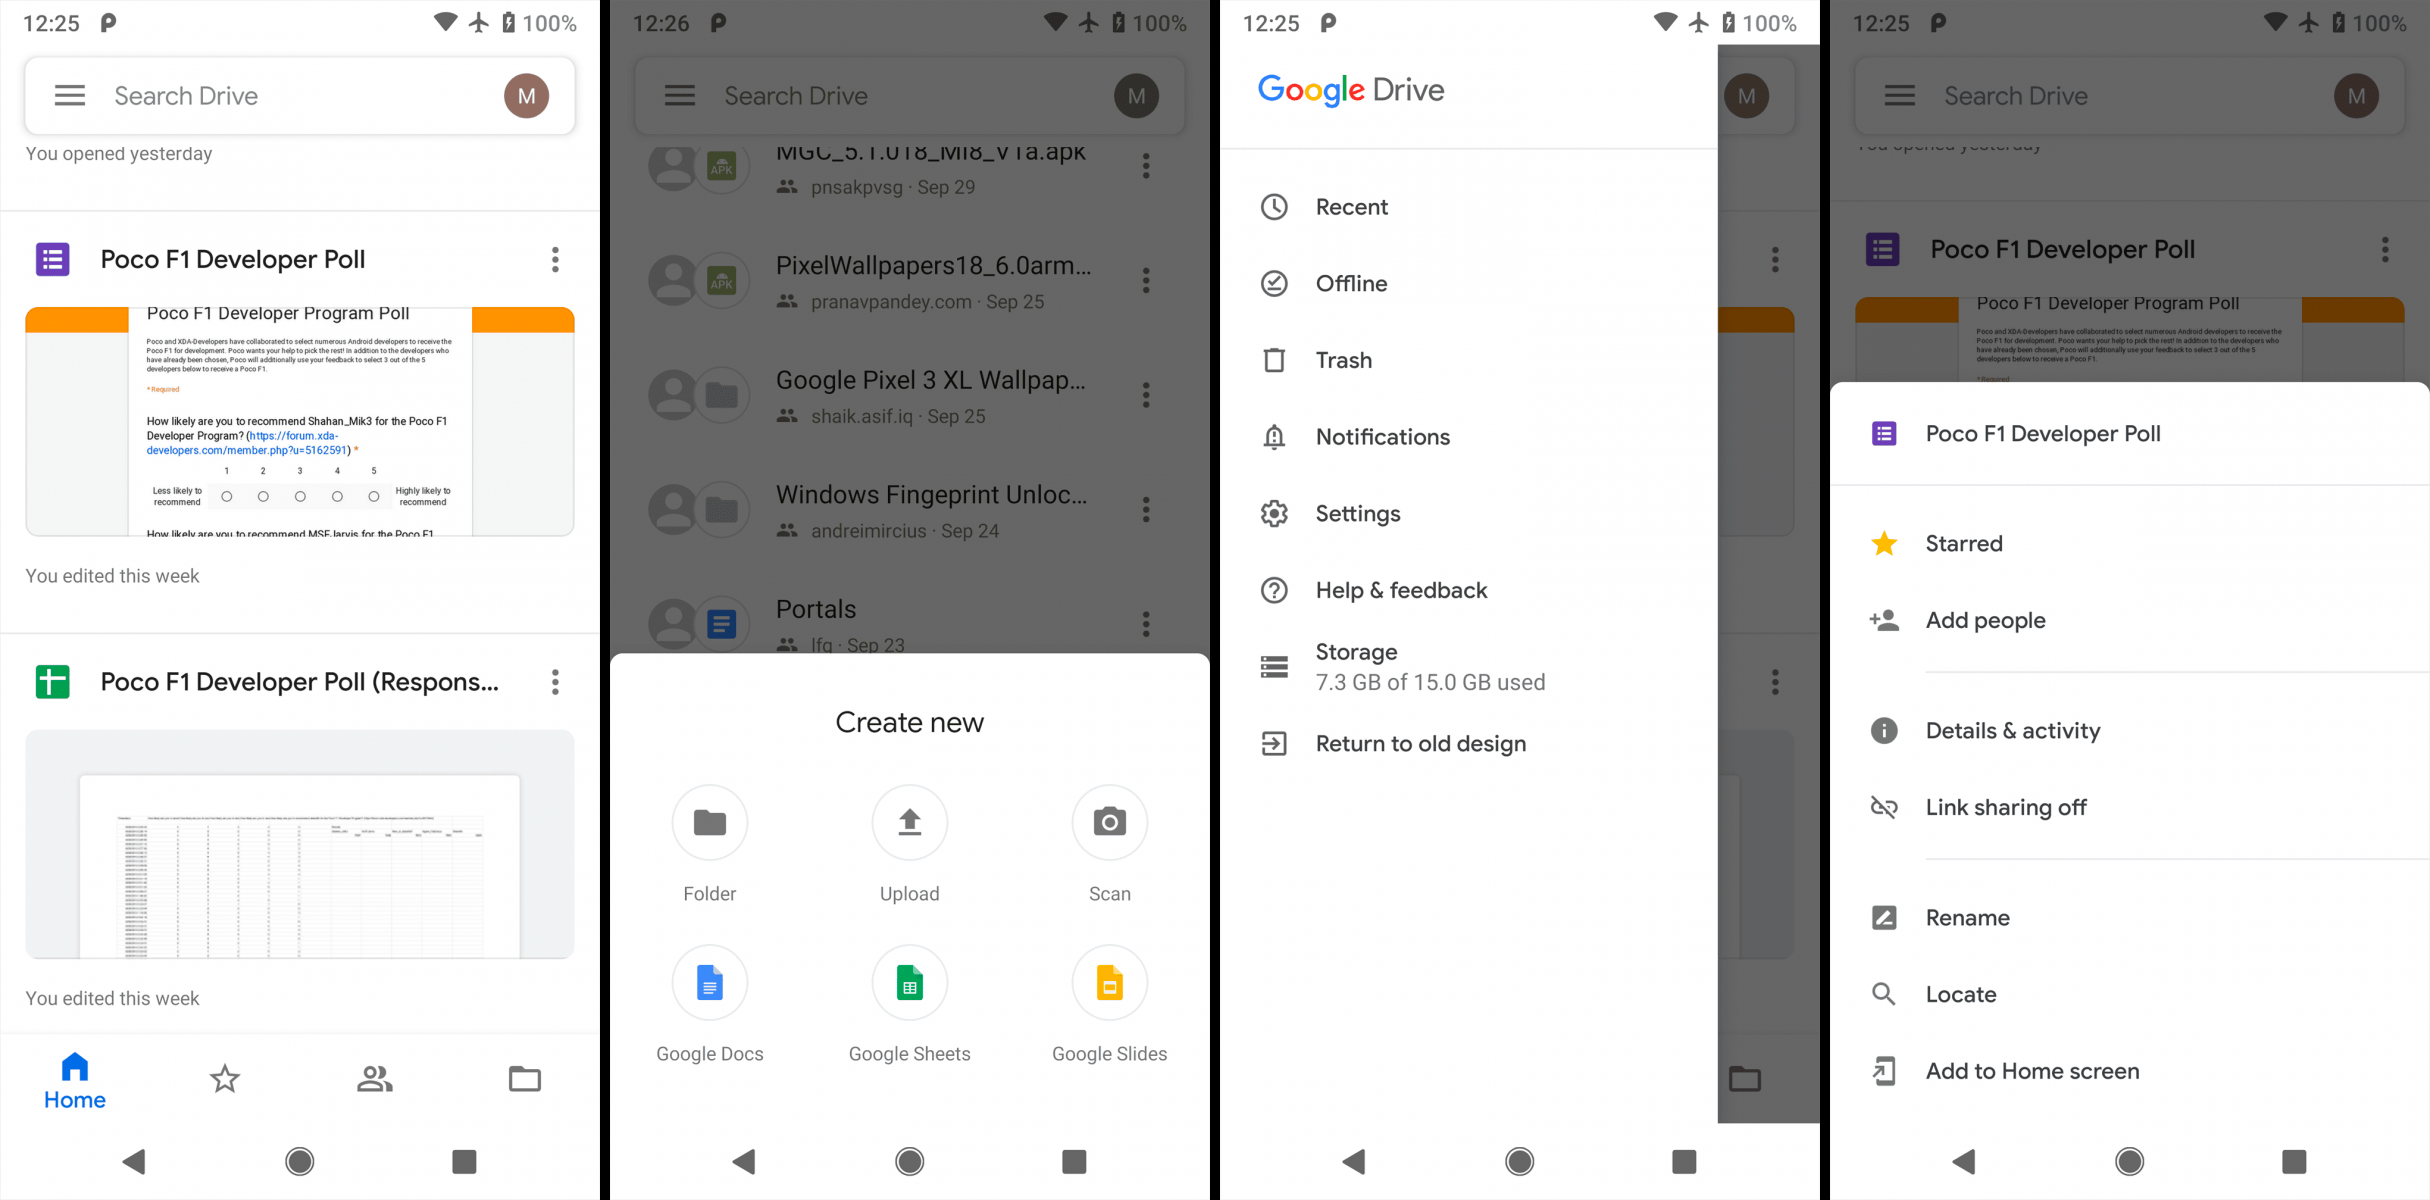 Google Drive for Android is about to get a Material Design refresh